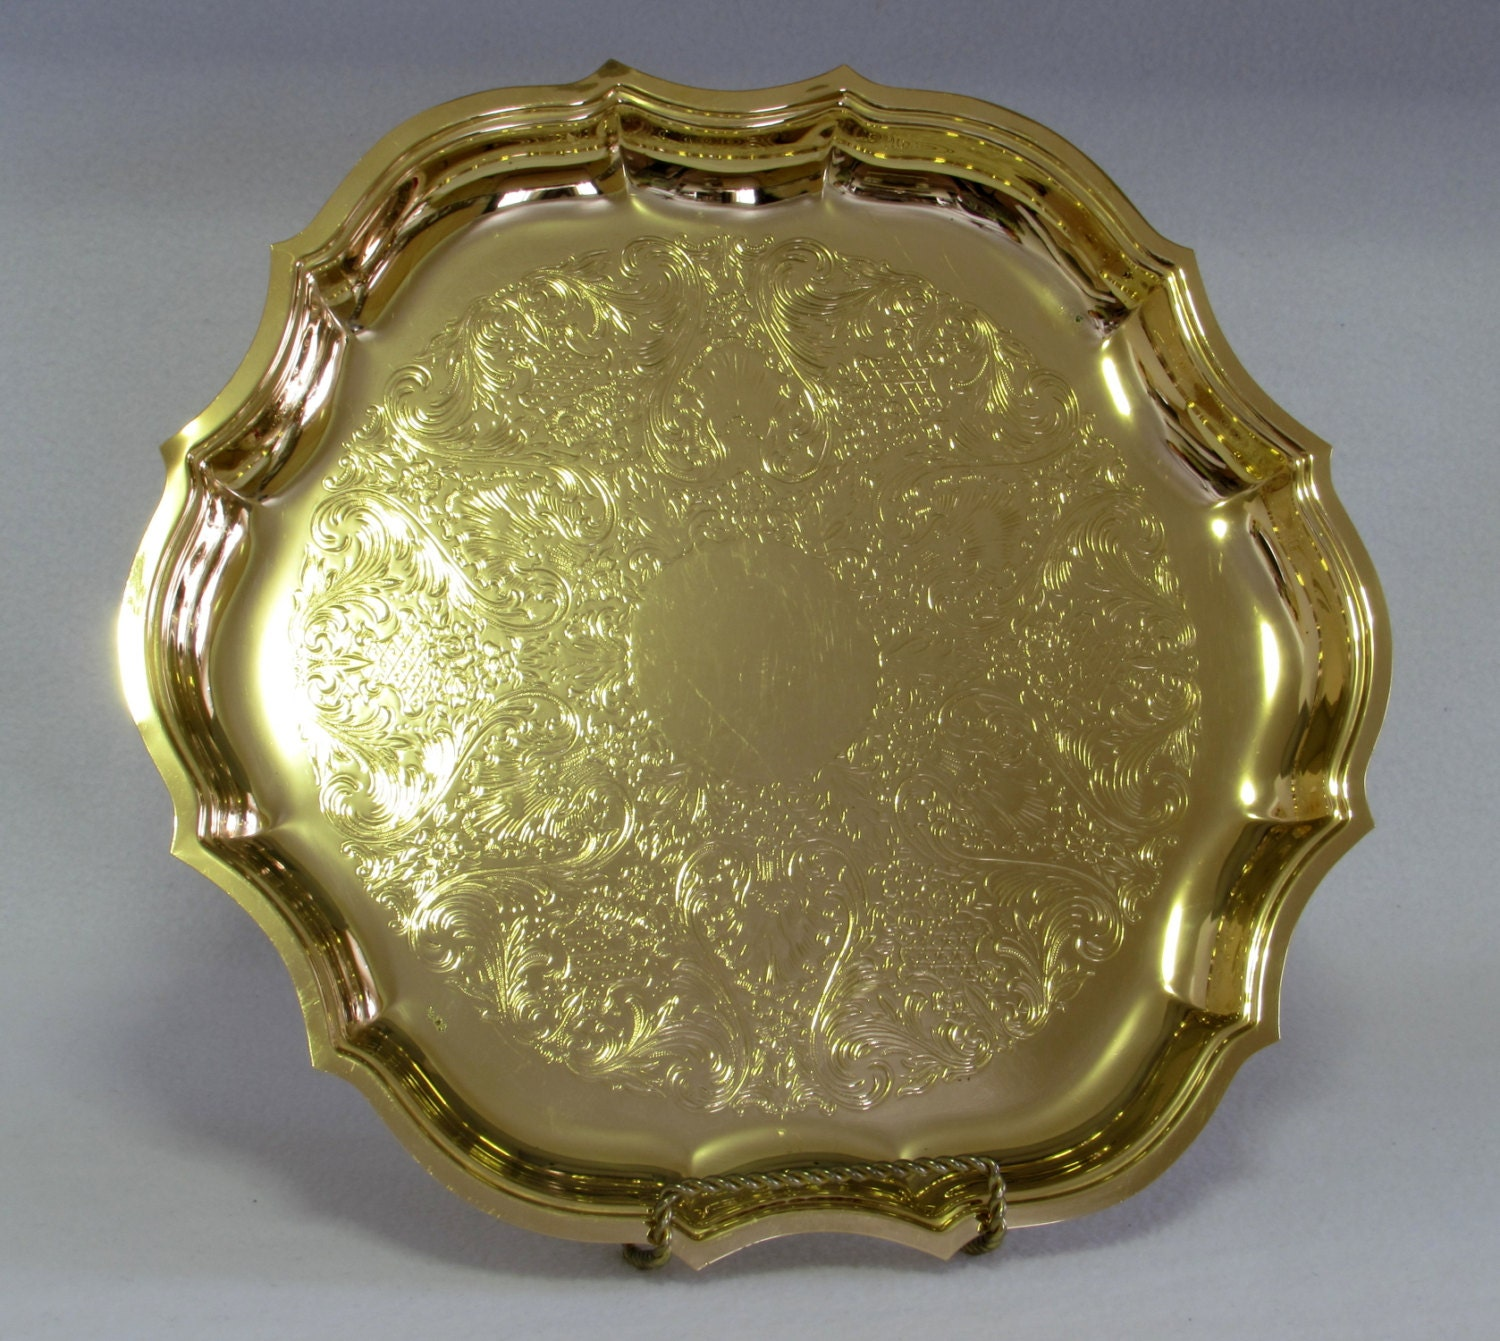 Gold Serving Platters & Trays: Create an elegant look for your next meal with this selection of serving platters and trays. gehedoruqigimate.ml - Your Online Serveware Store! Get 5% in rewards with Club O!